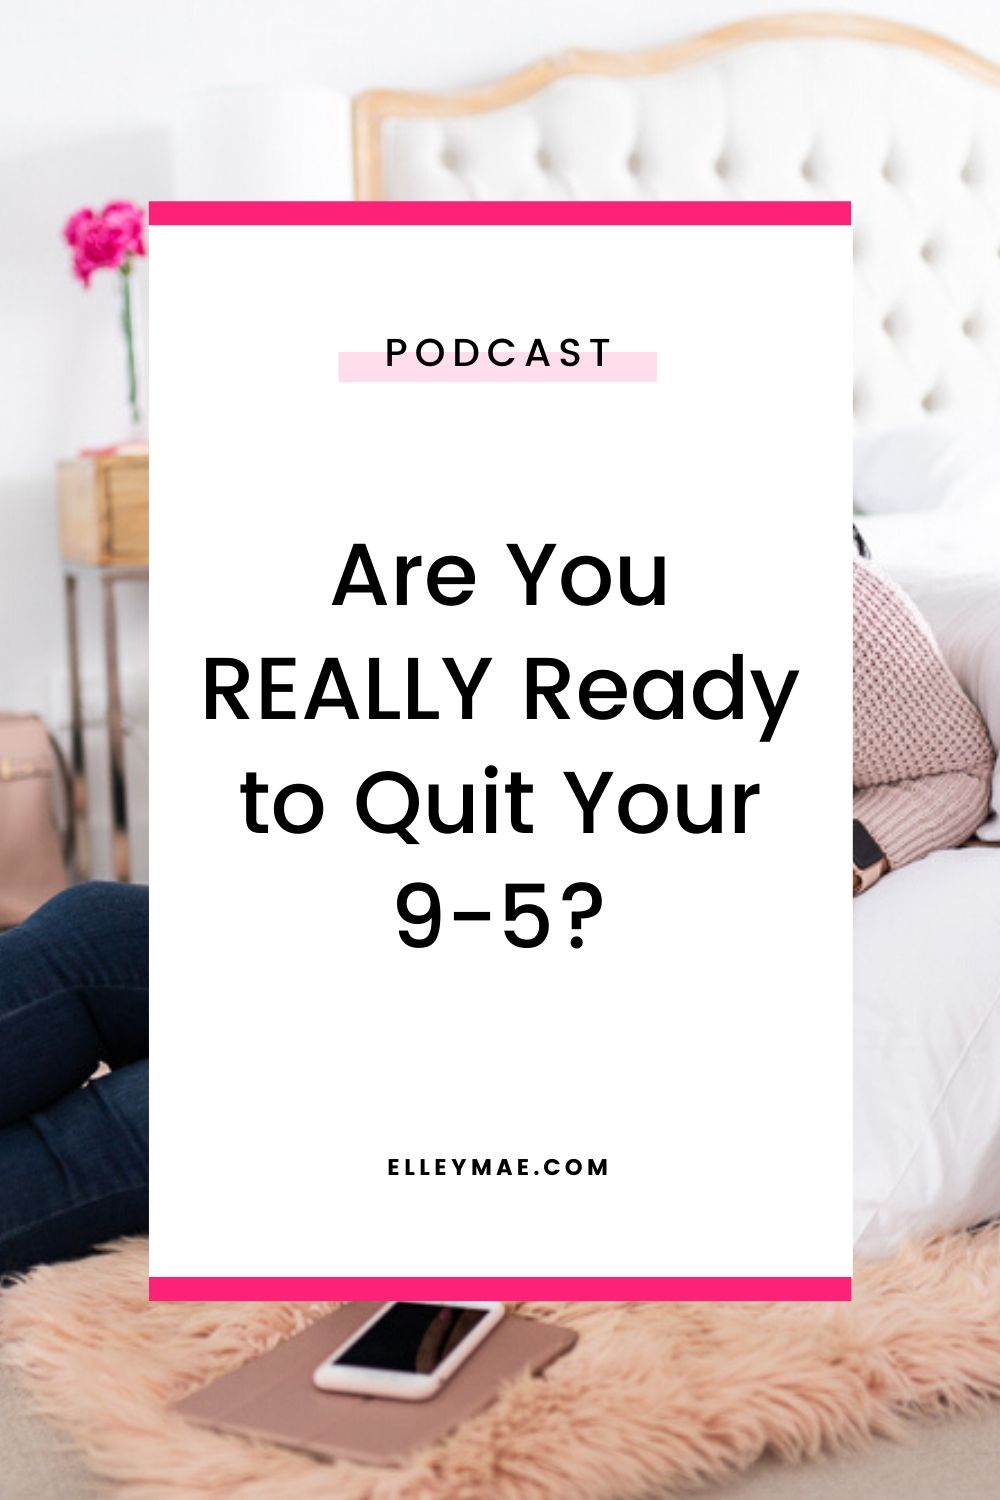 Are You REALLY Ready to Quit Your 9-5_